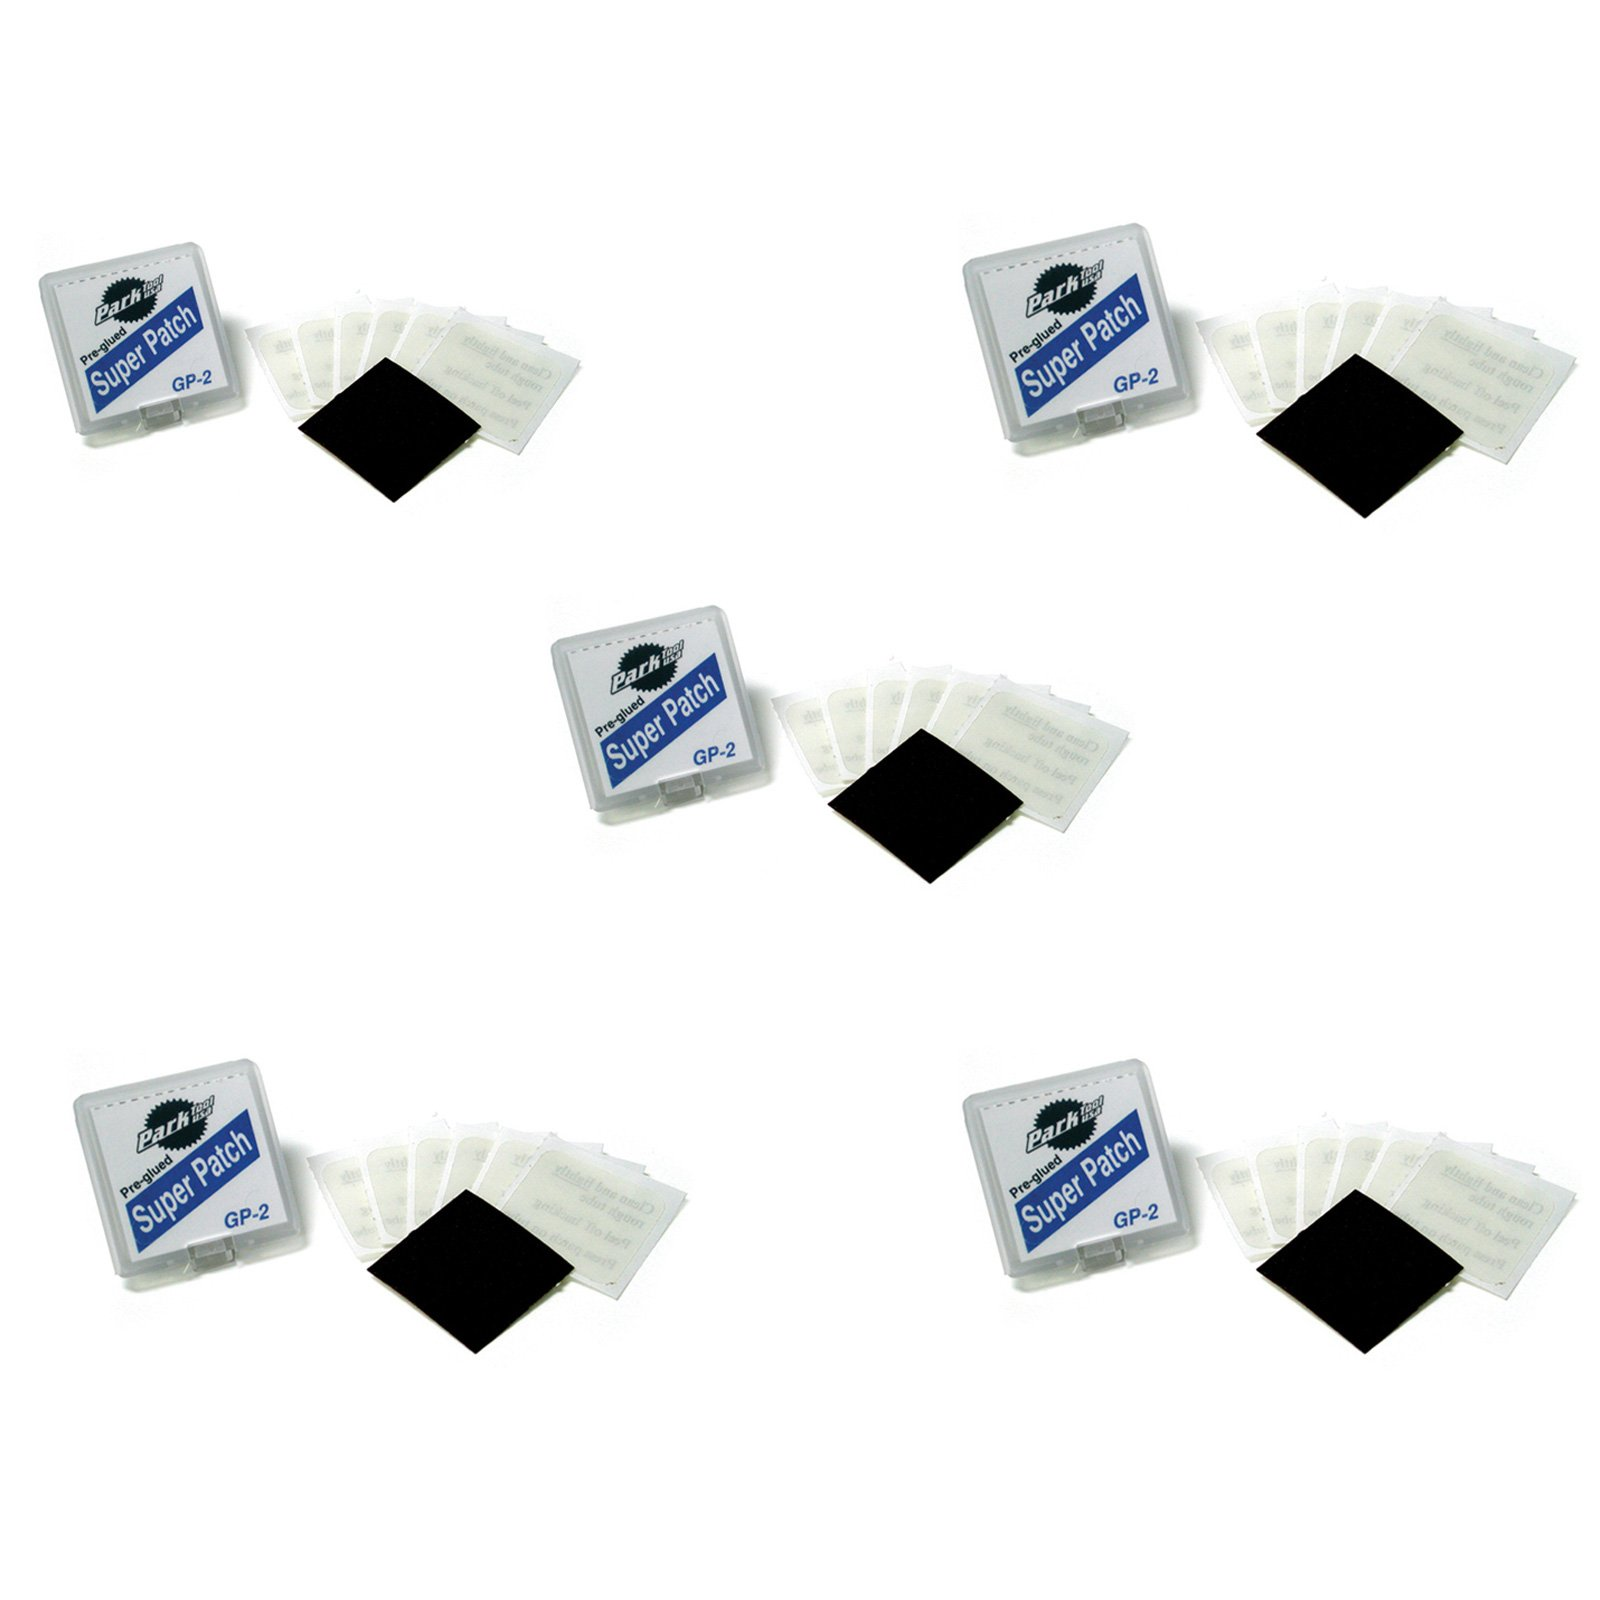 Park Tool GP-2 Pre-Glued Super Patch Puncture Repair Kits (Pack of 5 Kits) by Park Tool (Image #1)